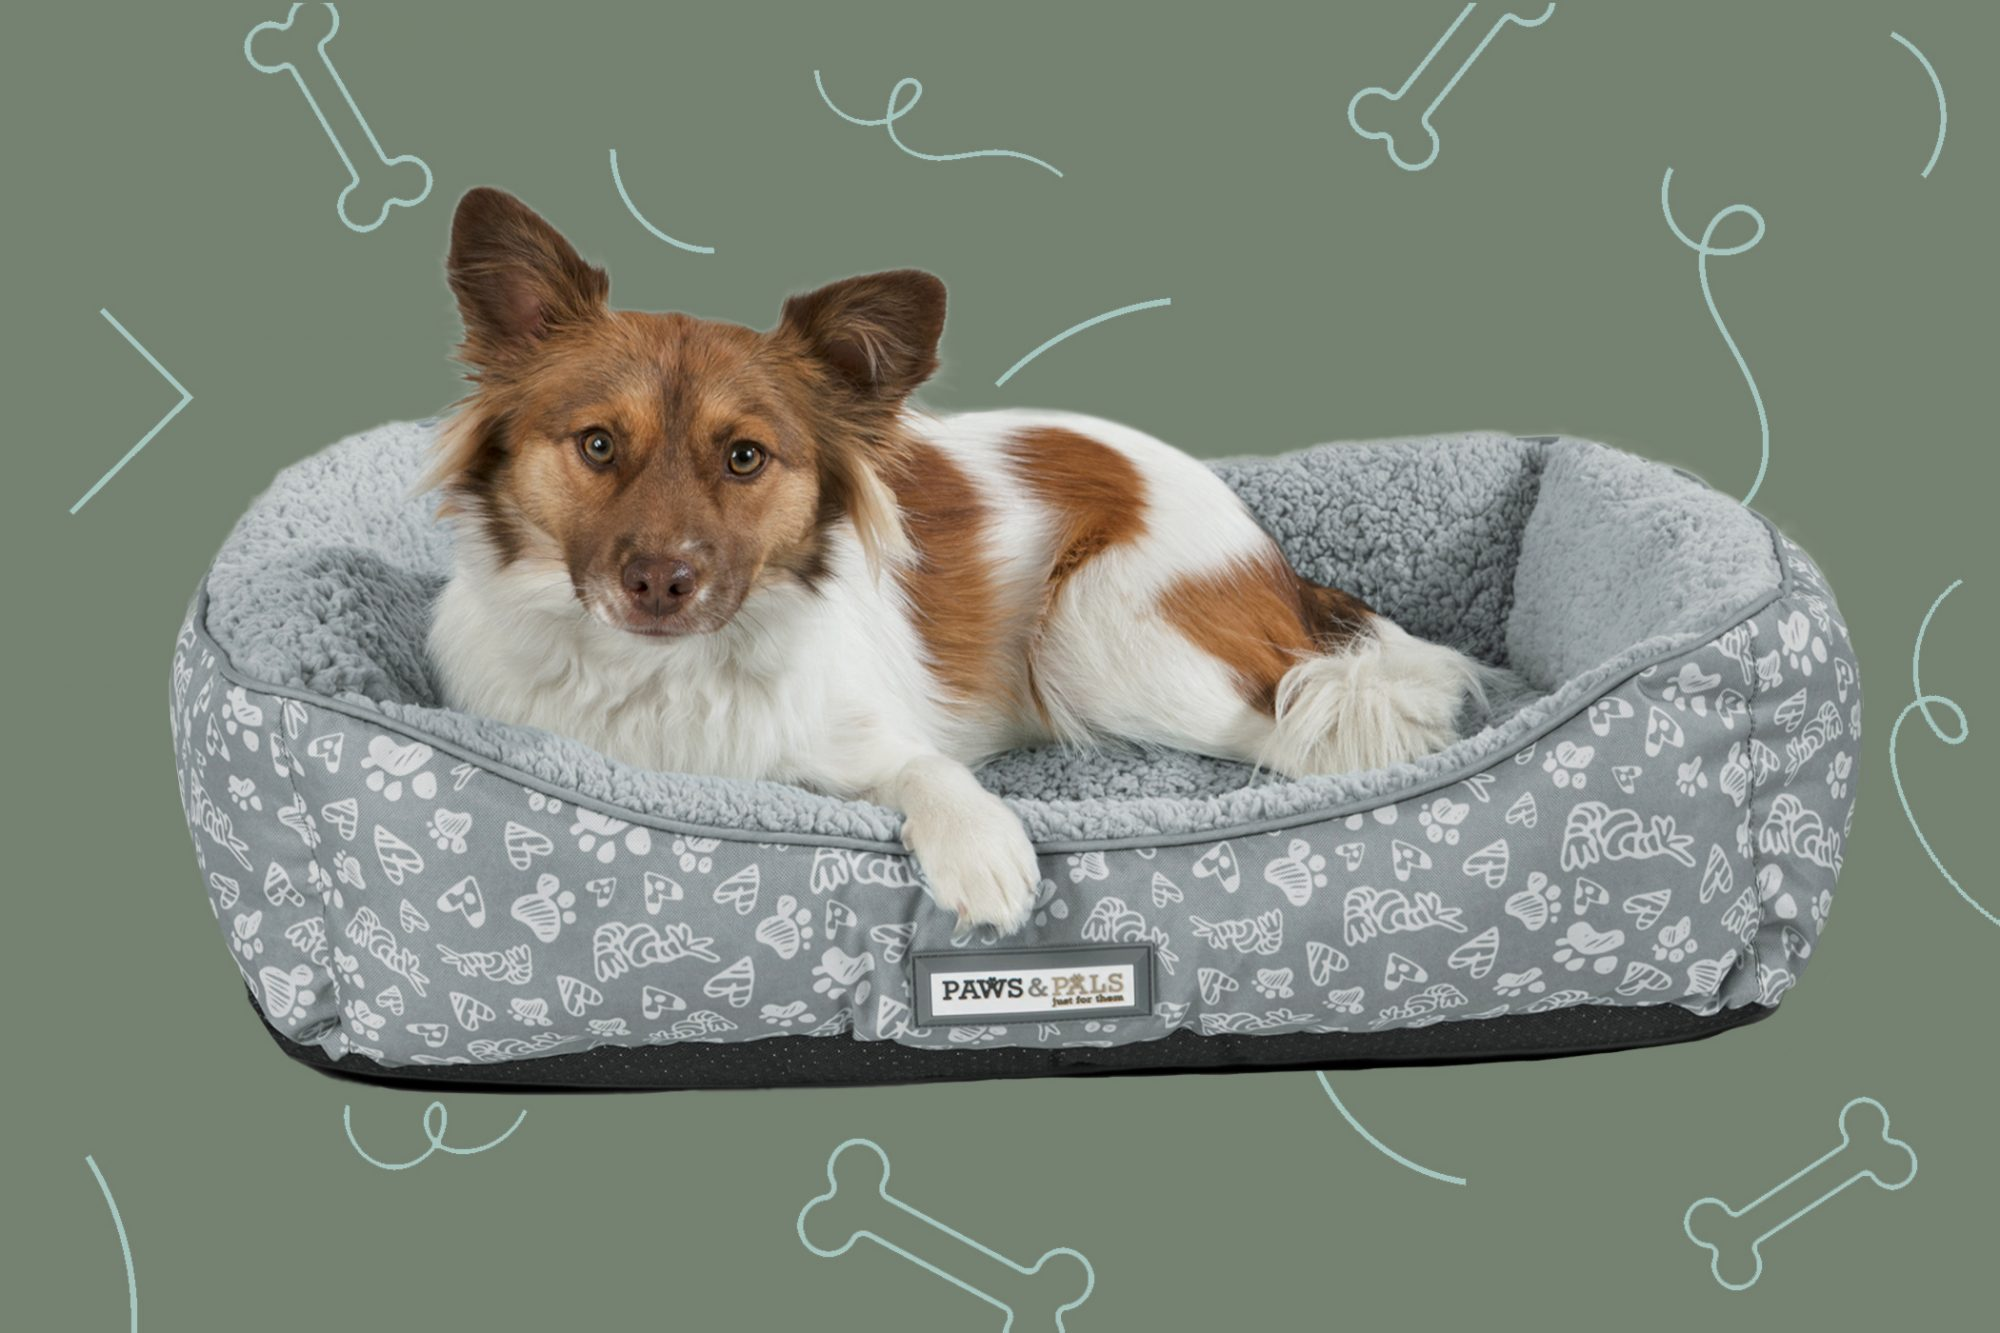 Small dog laws in Paws and Pals heated dog bed, illustrated background